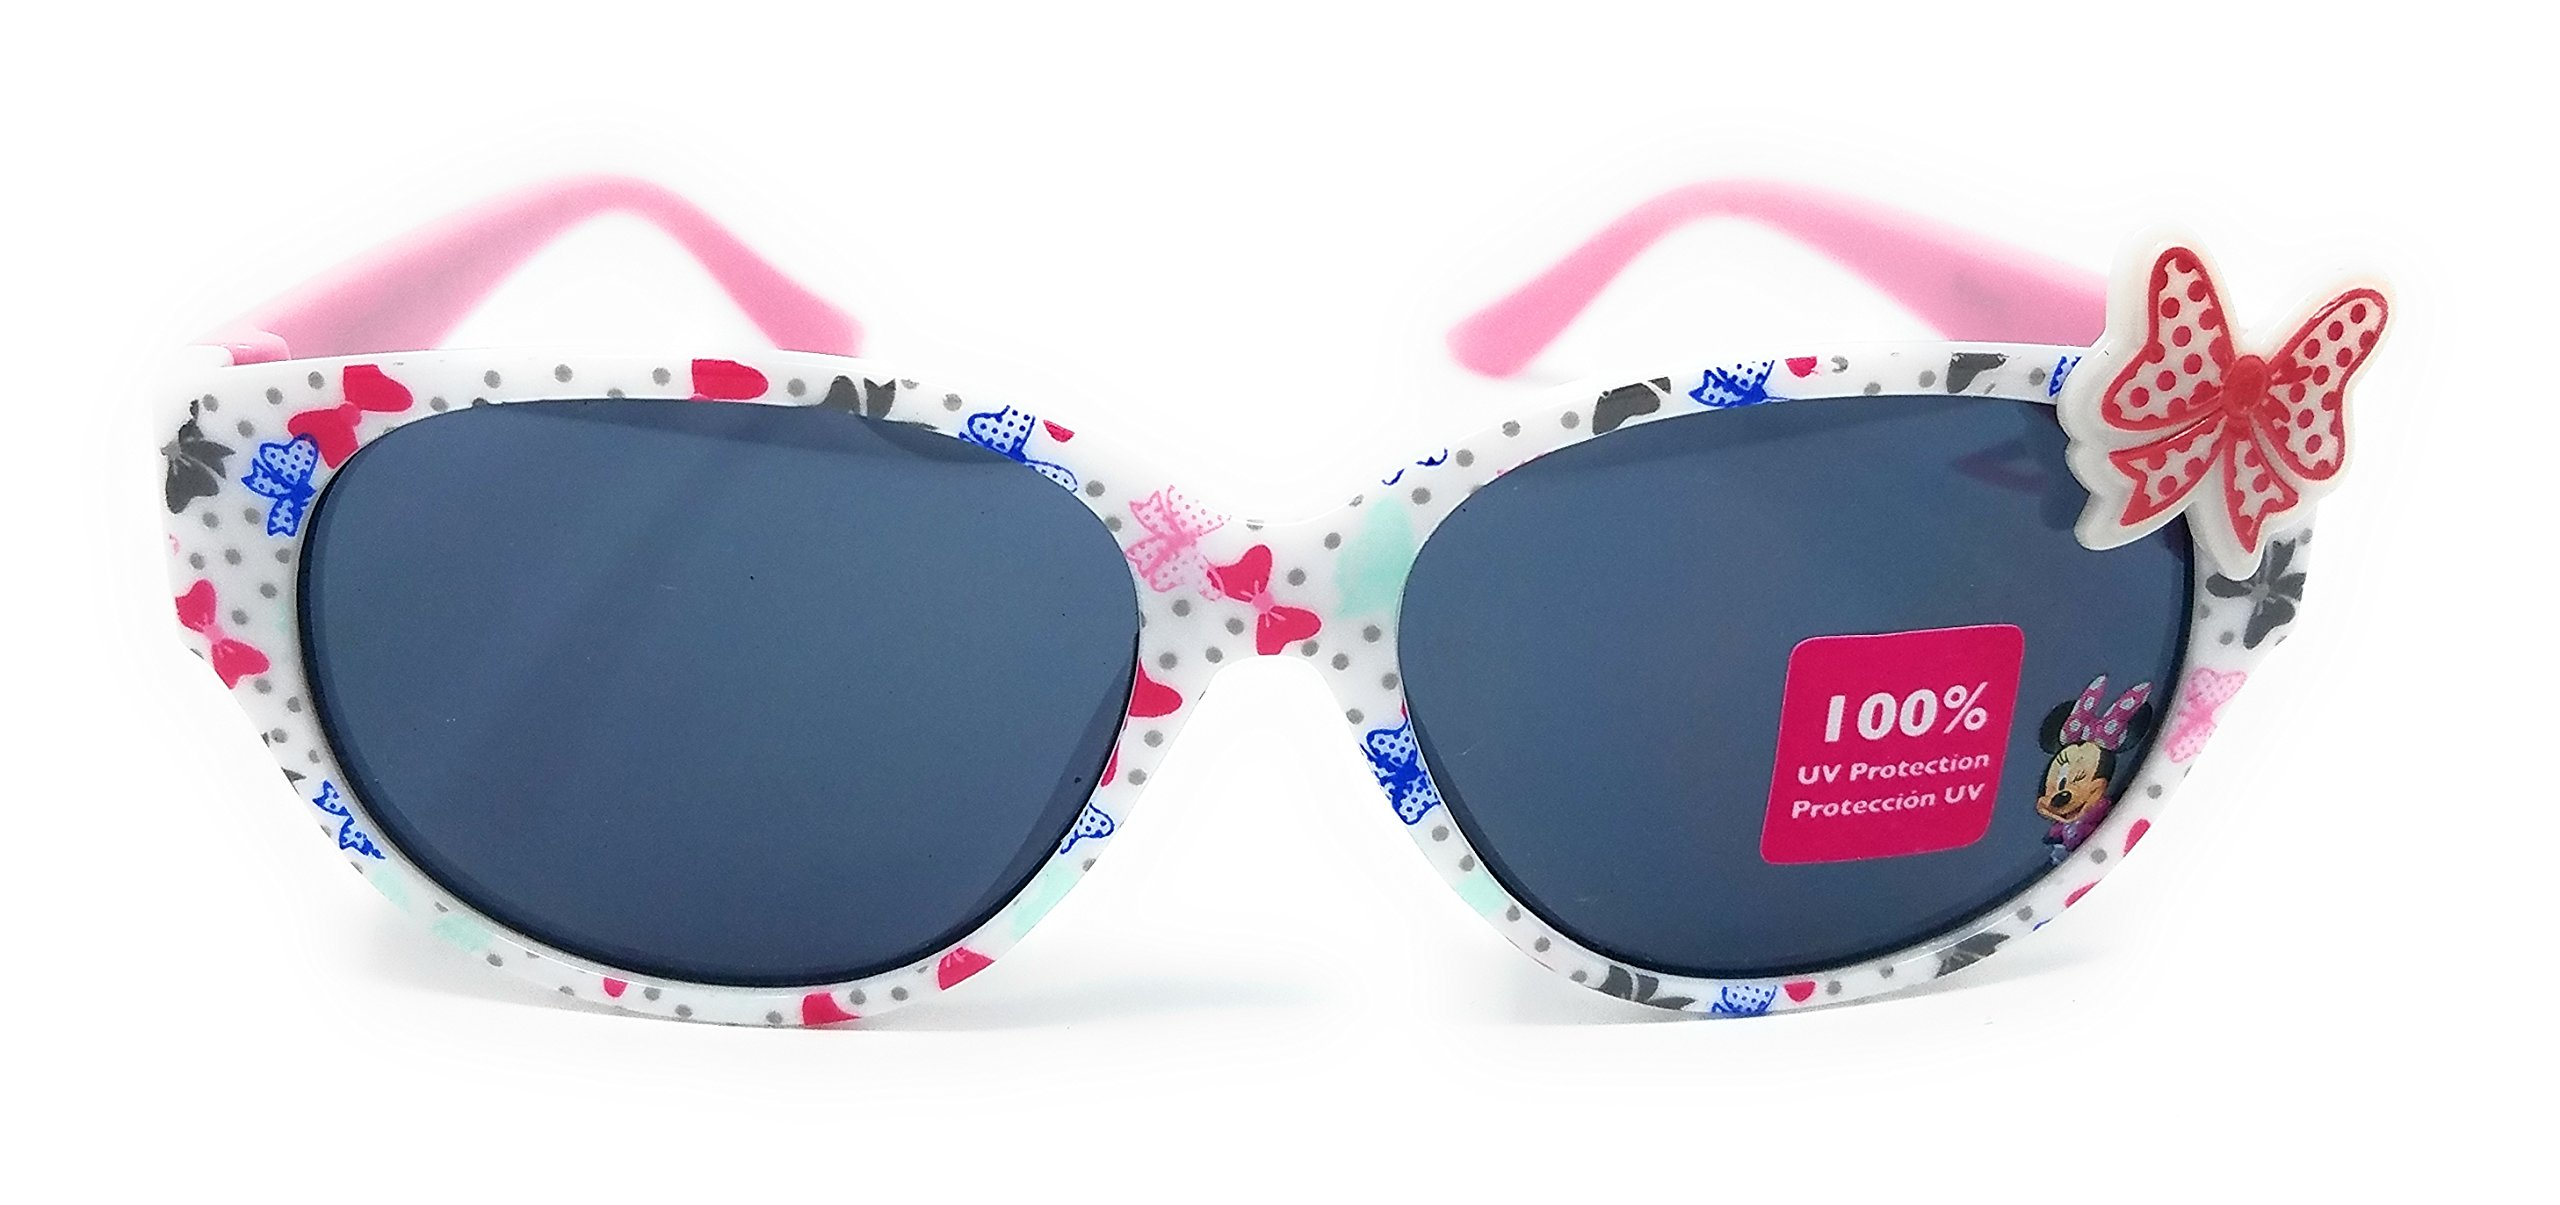 Disney Store Girl's Minnie Mouse Sunglasses in White and Pink with Cute Bow by Pan Oceanic Eyewear LTD (Image #1)